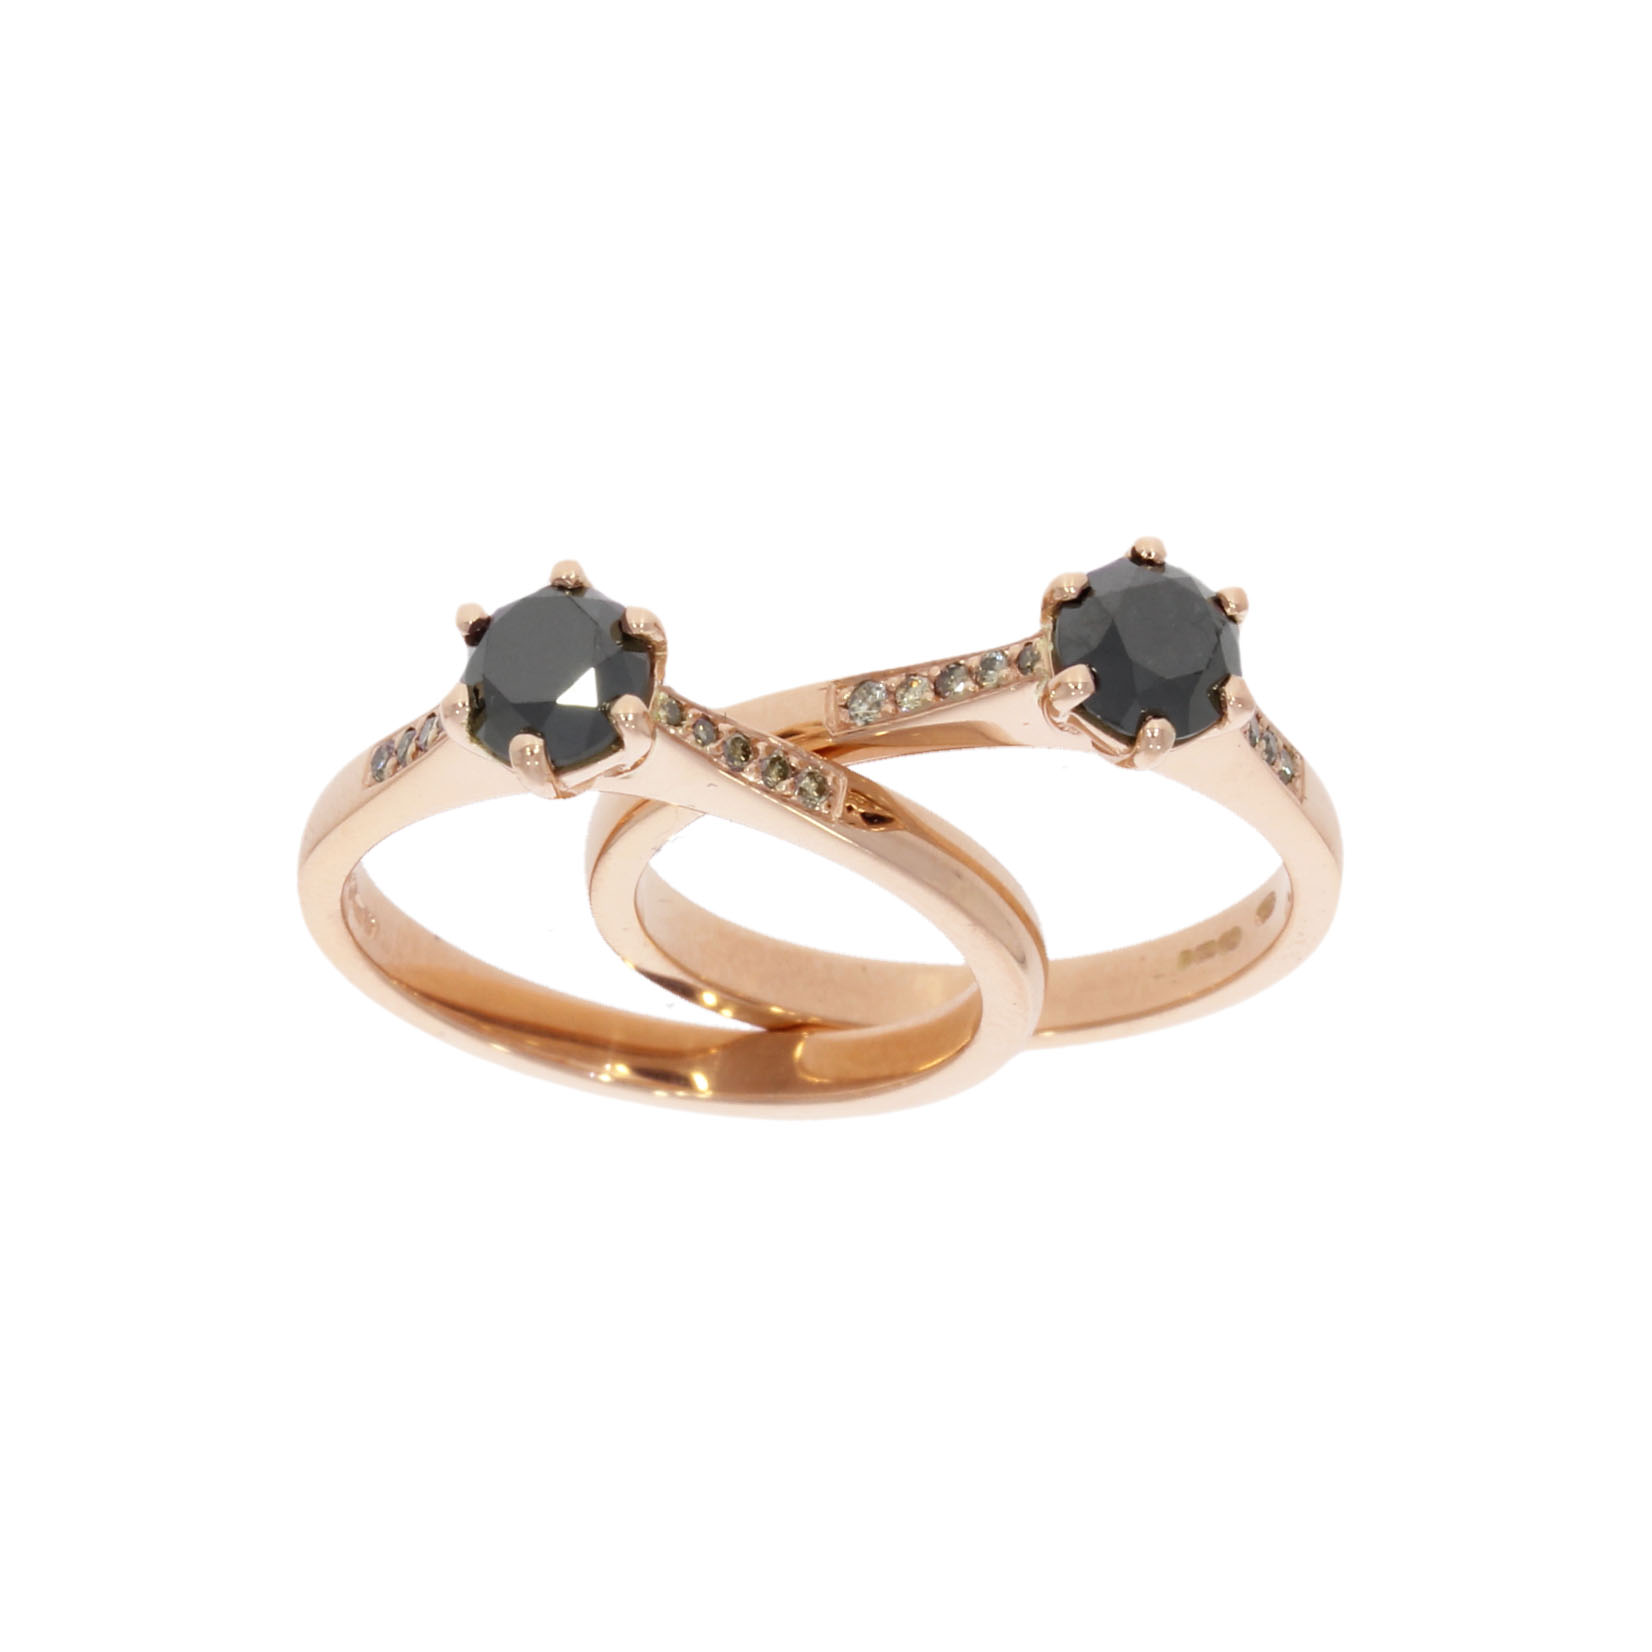 rose gold black diamond lesbian gay lgbt matching engagement wedding rings uk